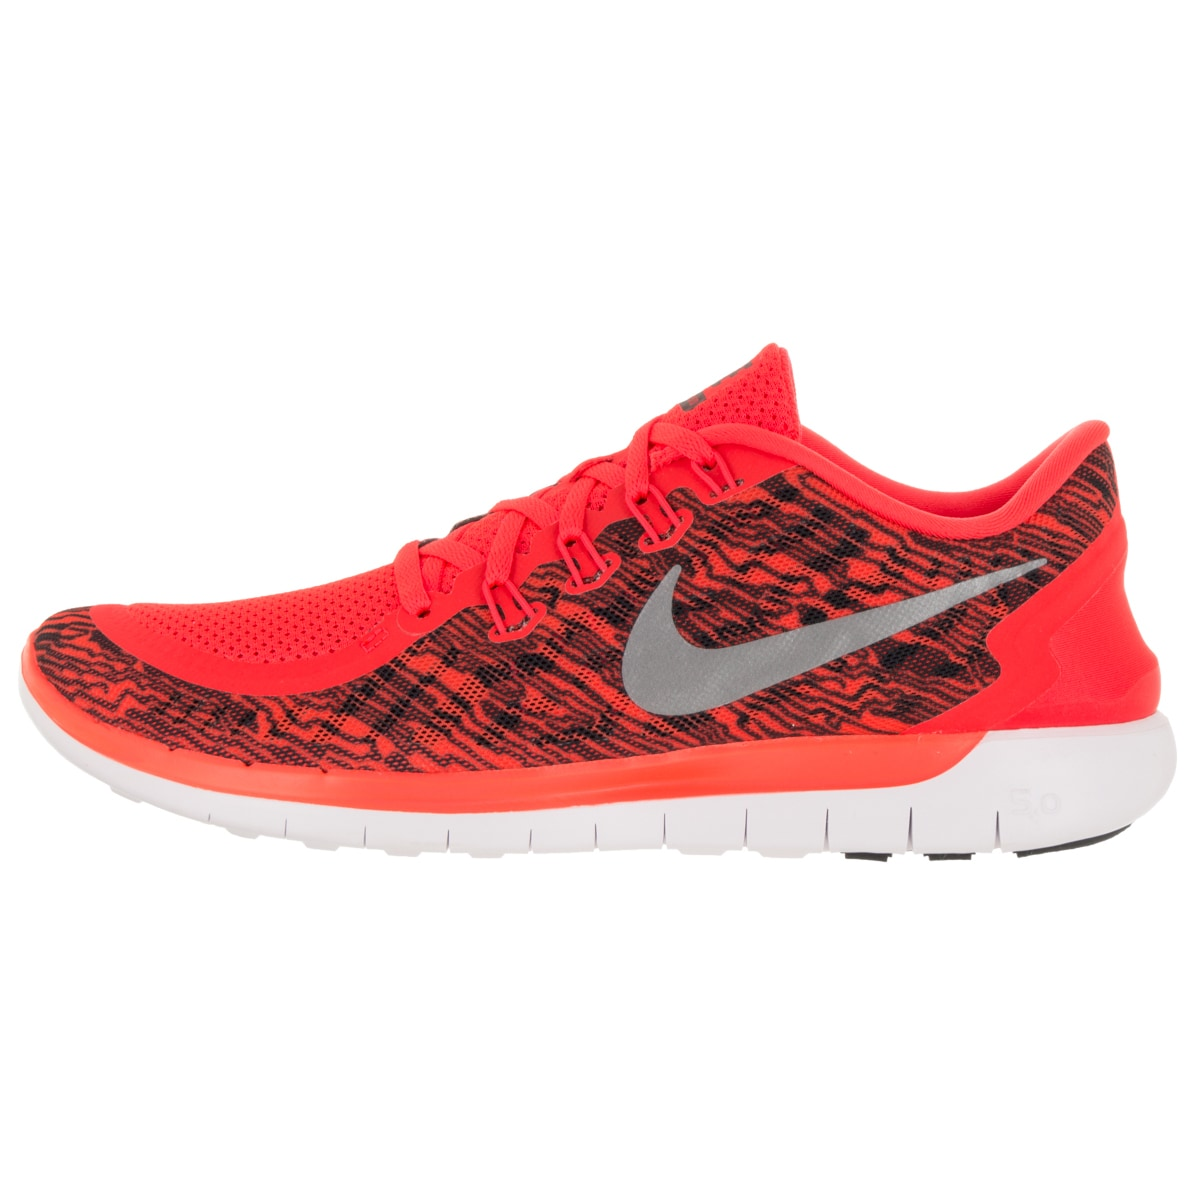 72381051f58a4 Shop Nike Men s Free 5.0 Print Brightt Crimson Black White Running Shoe -  Free Shipping Today - Overstock - 12118824